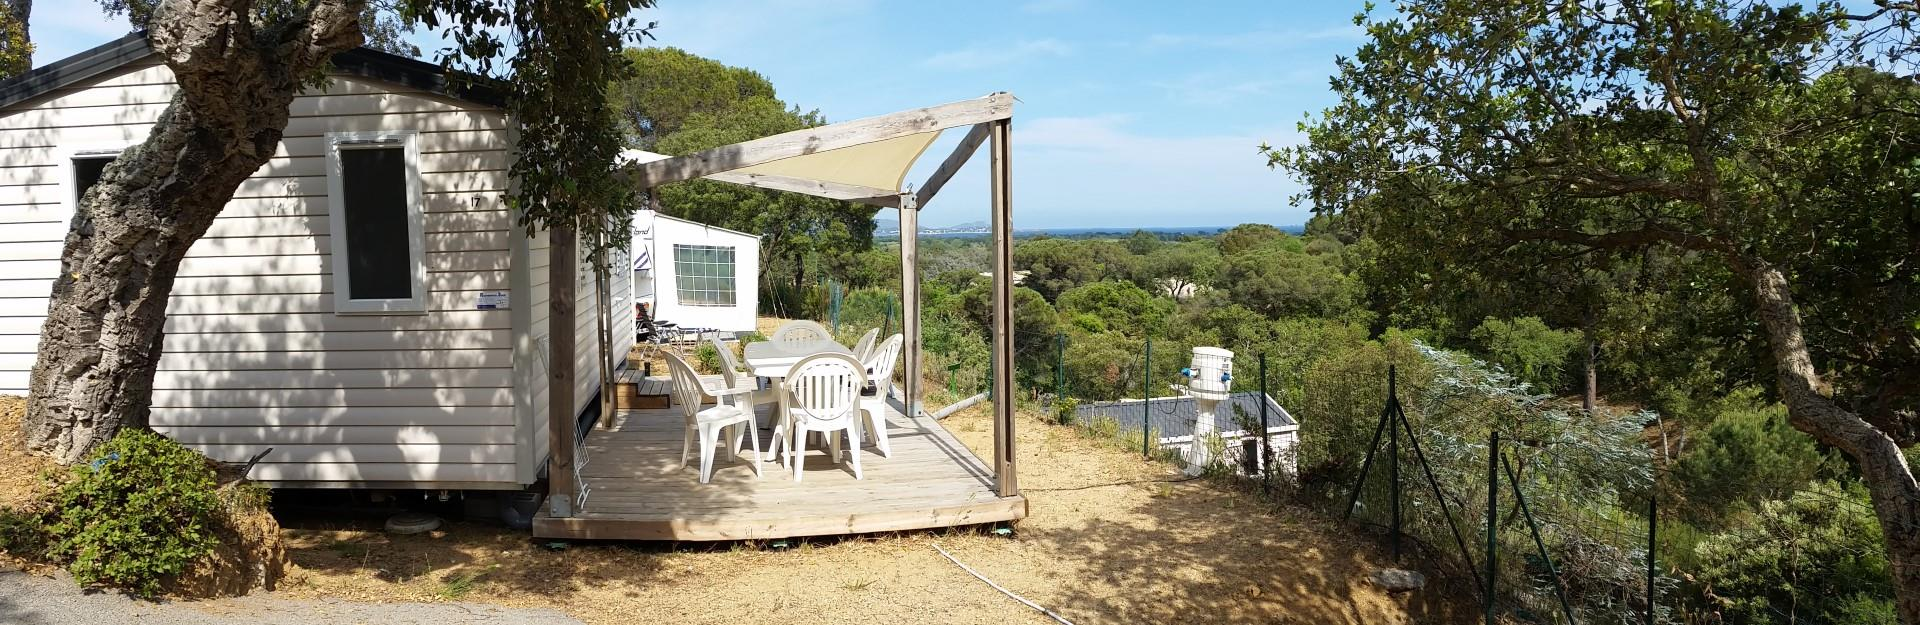 Location - Mobilhome Confort 28M² Clim Inclus - Camping Les Lauriers Roses